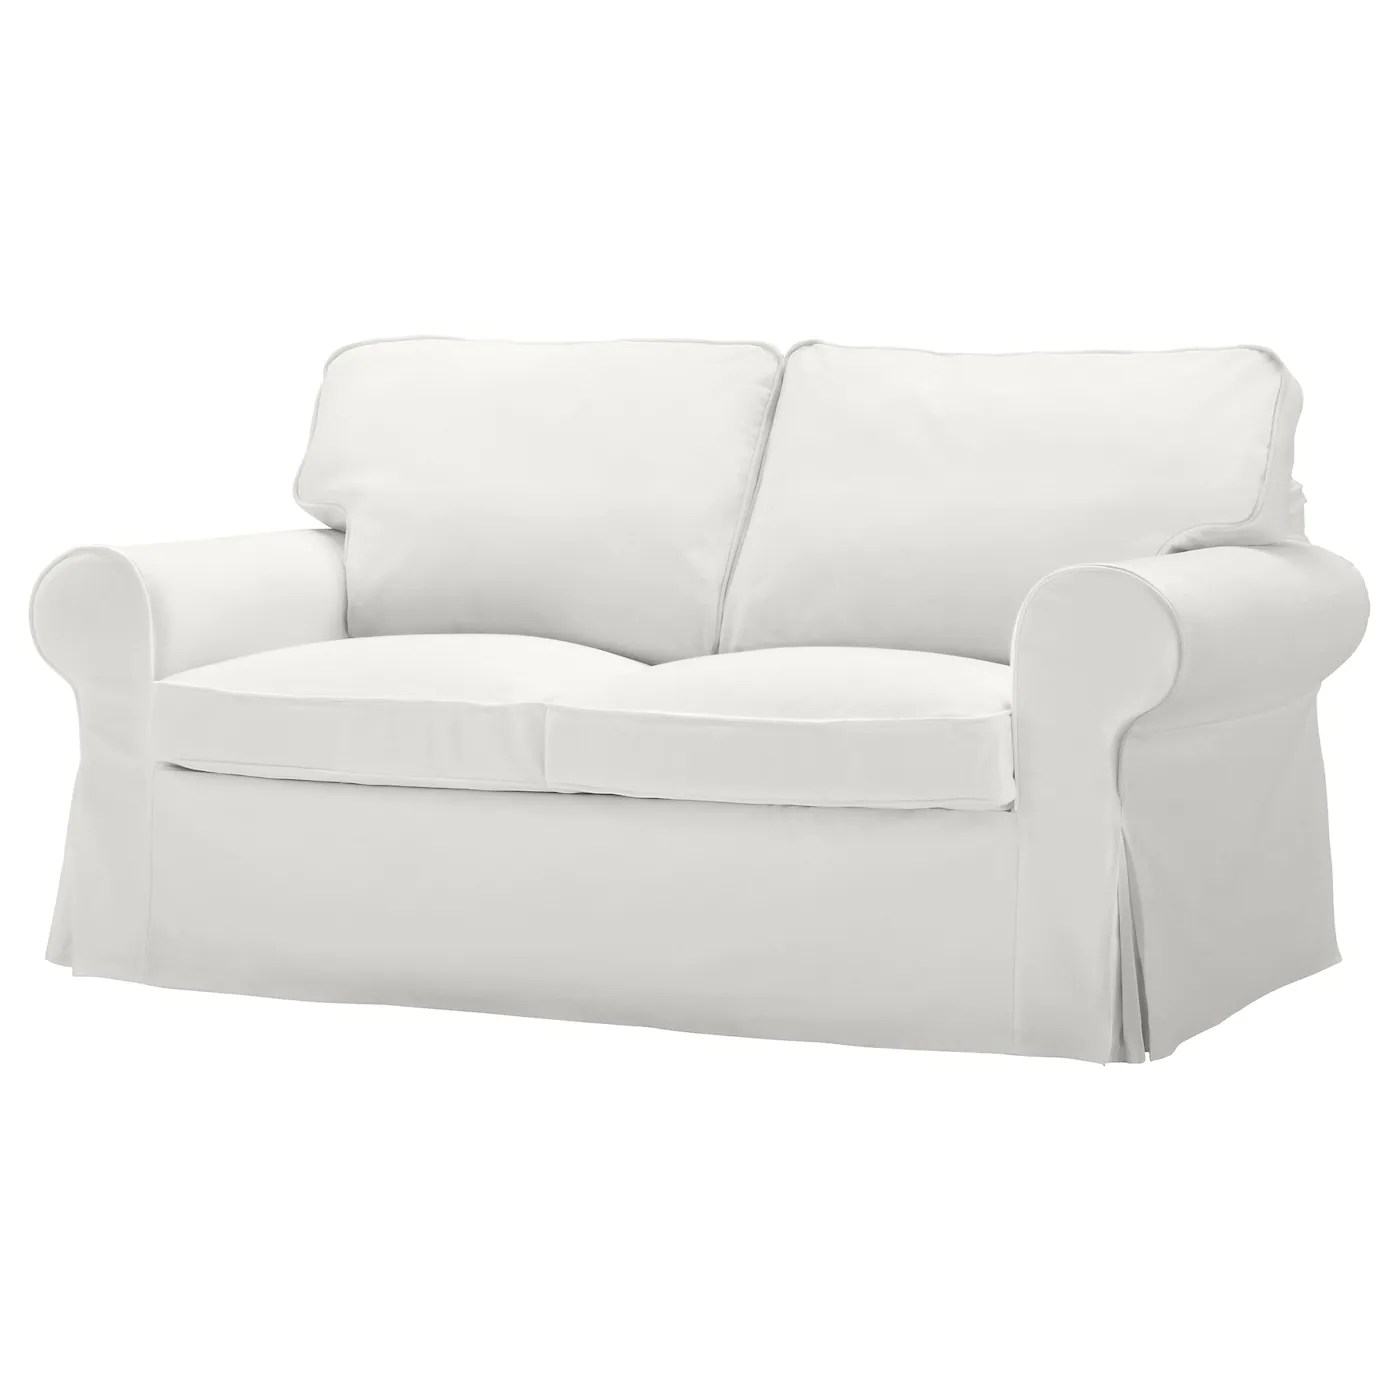 sofa chair covers ikea cool room chairs ektorp cover two seat